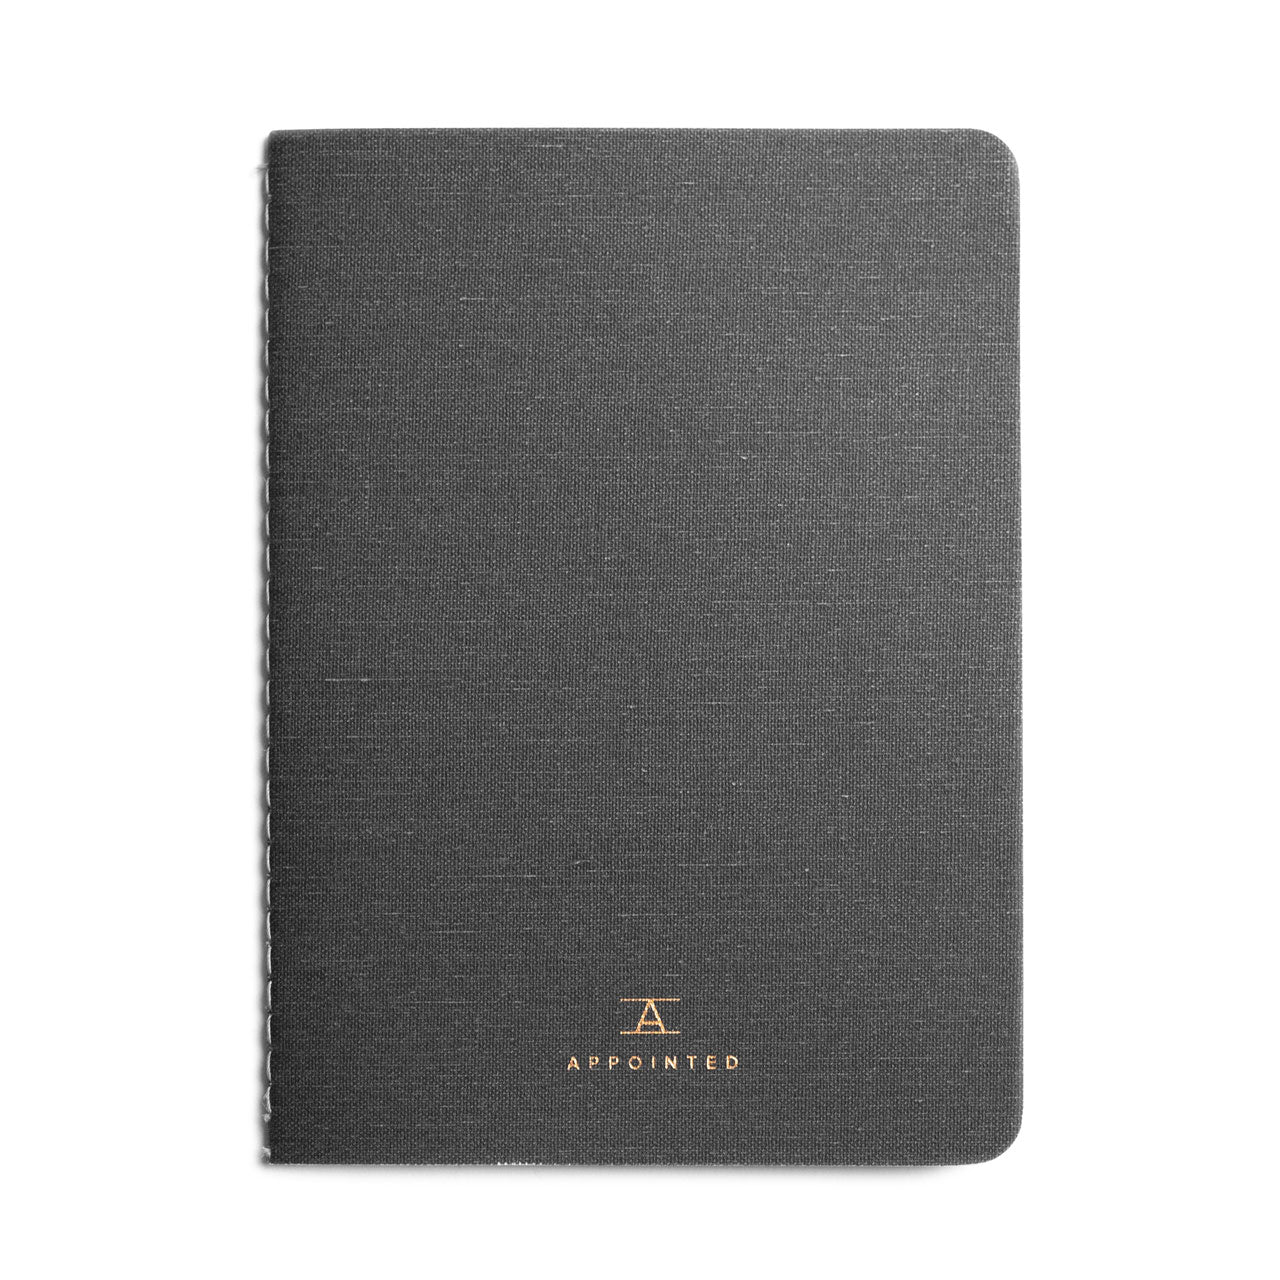 Appointed Jotter Notebook